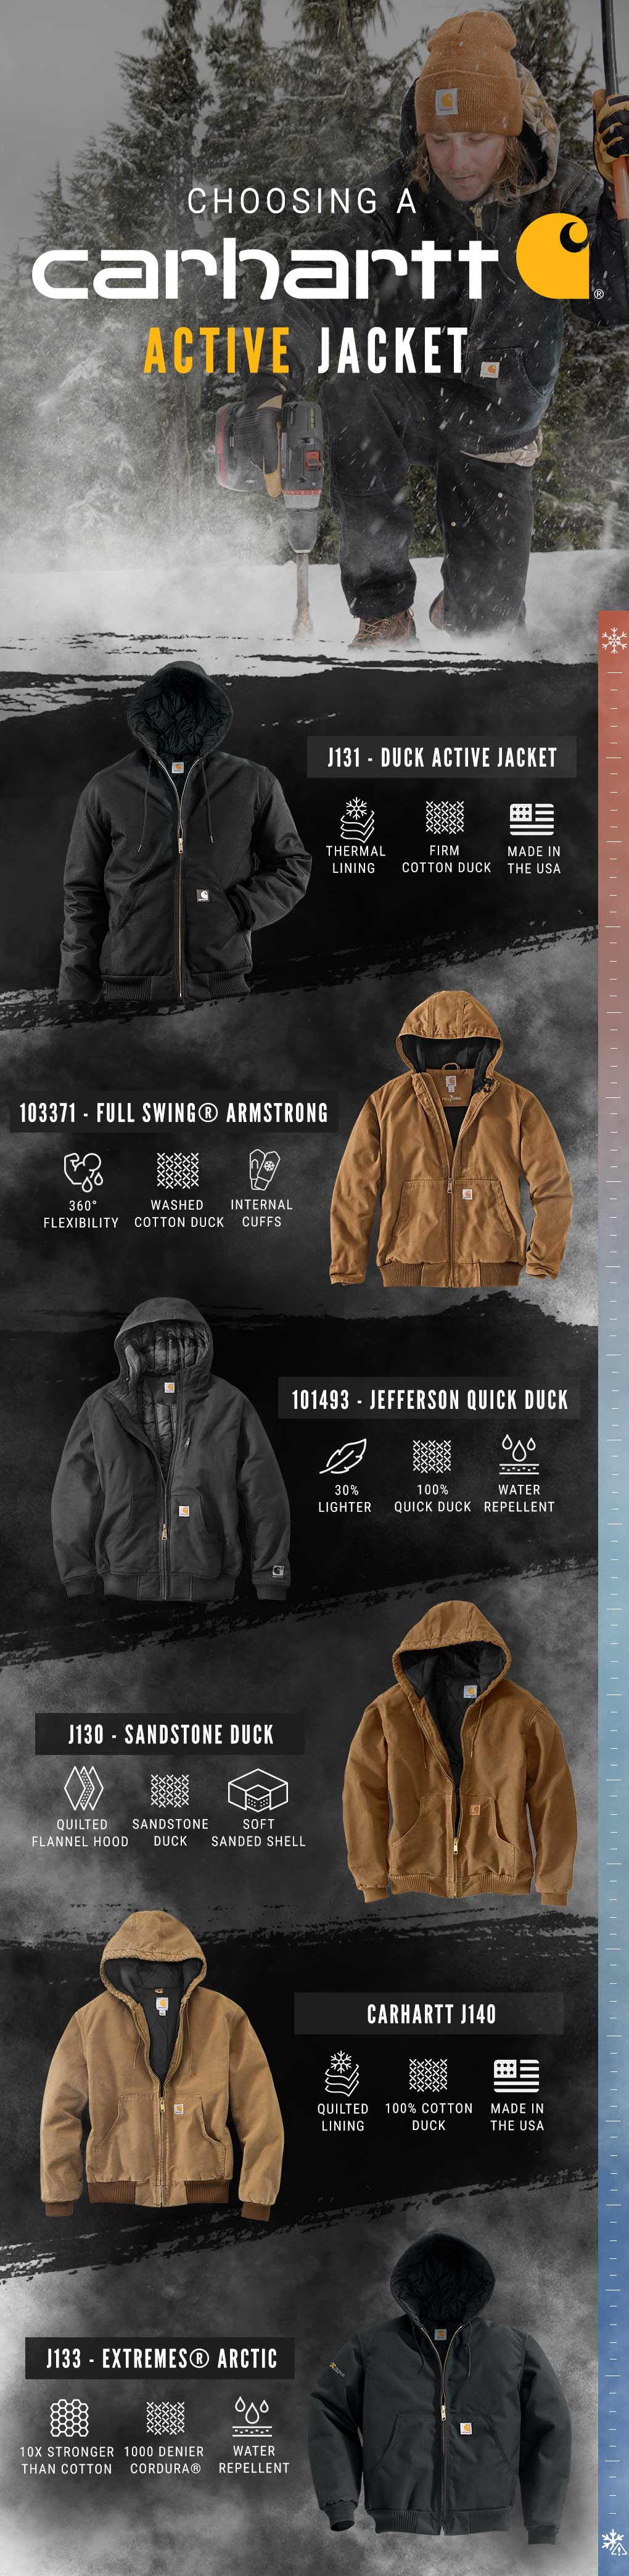 Choosing a Carhartt Active Jacket